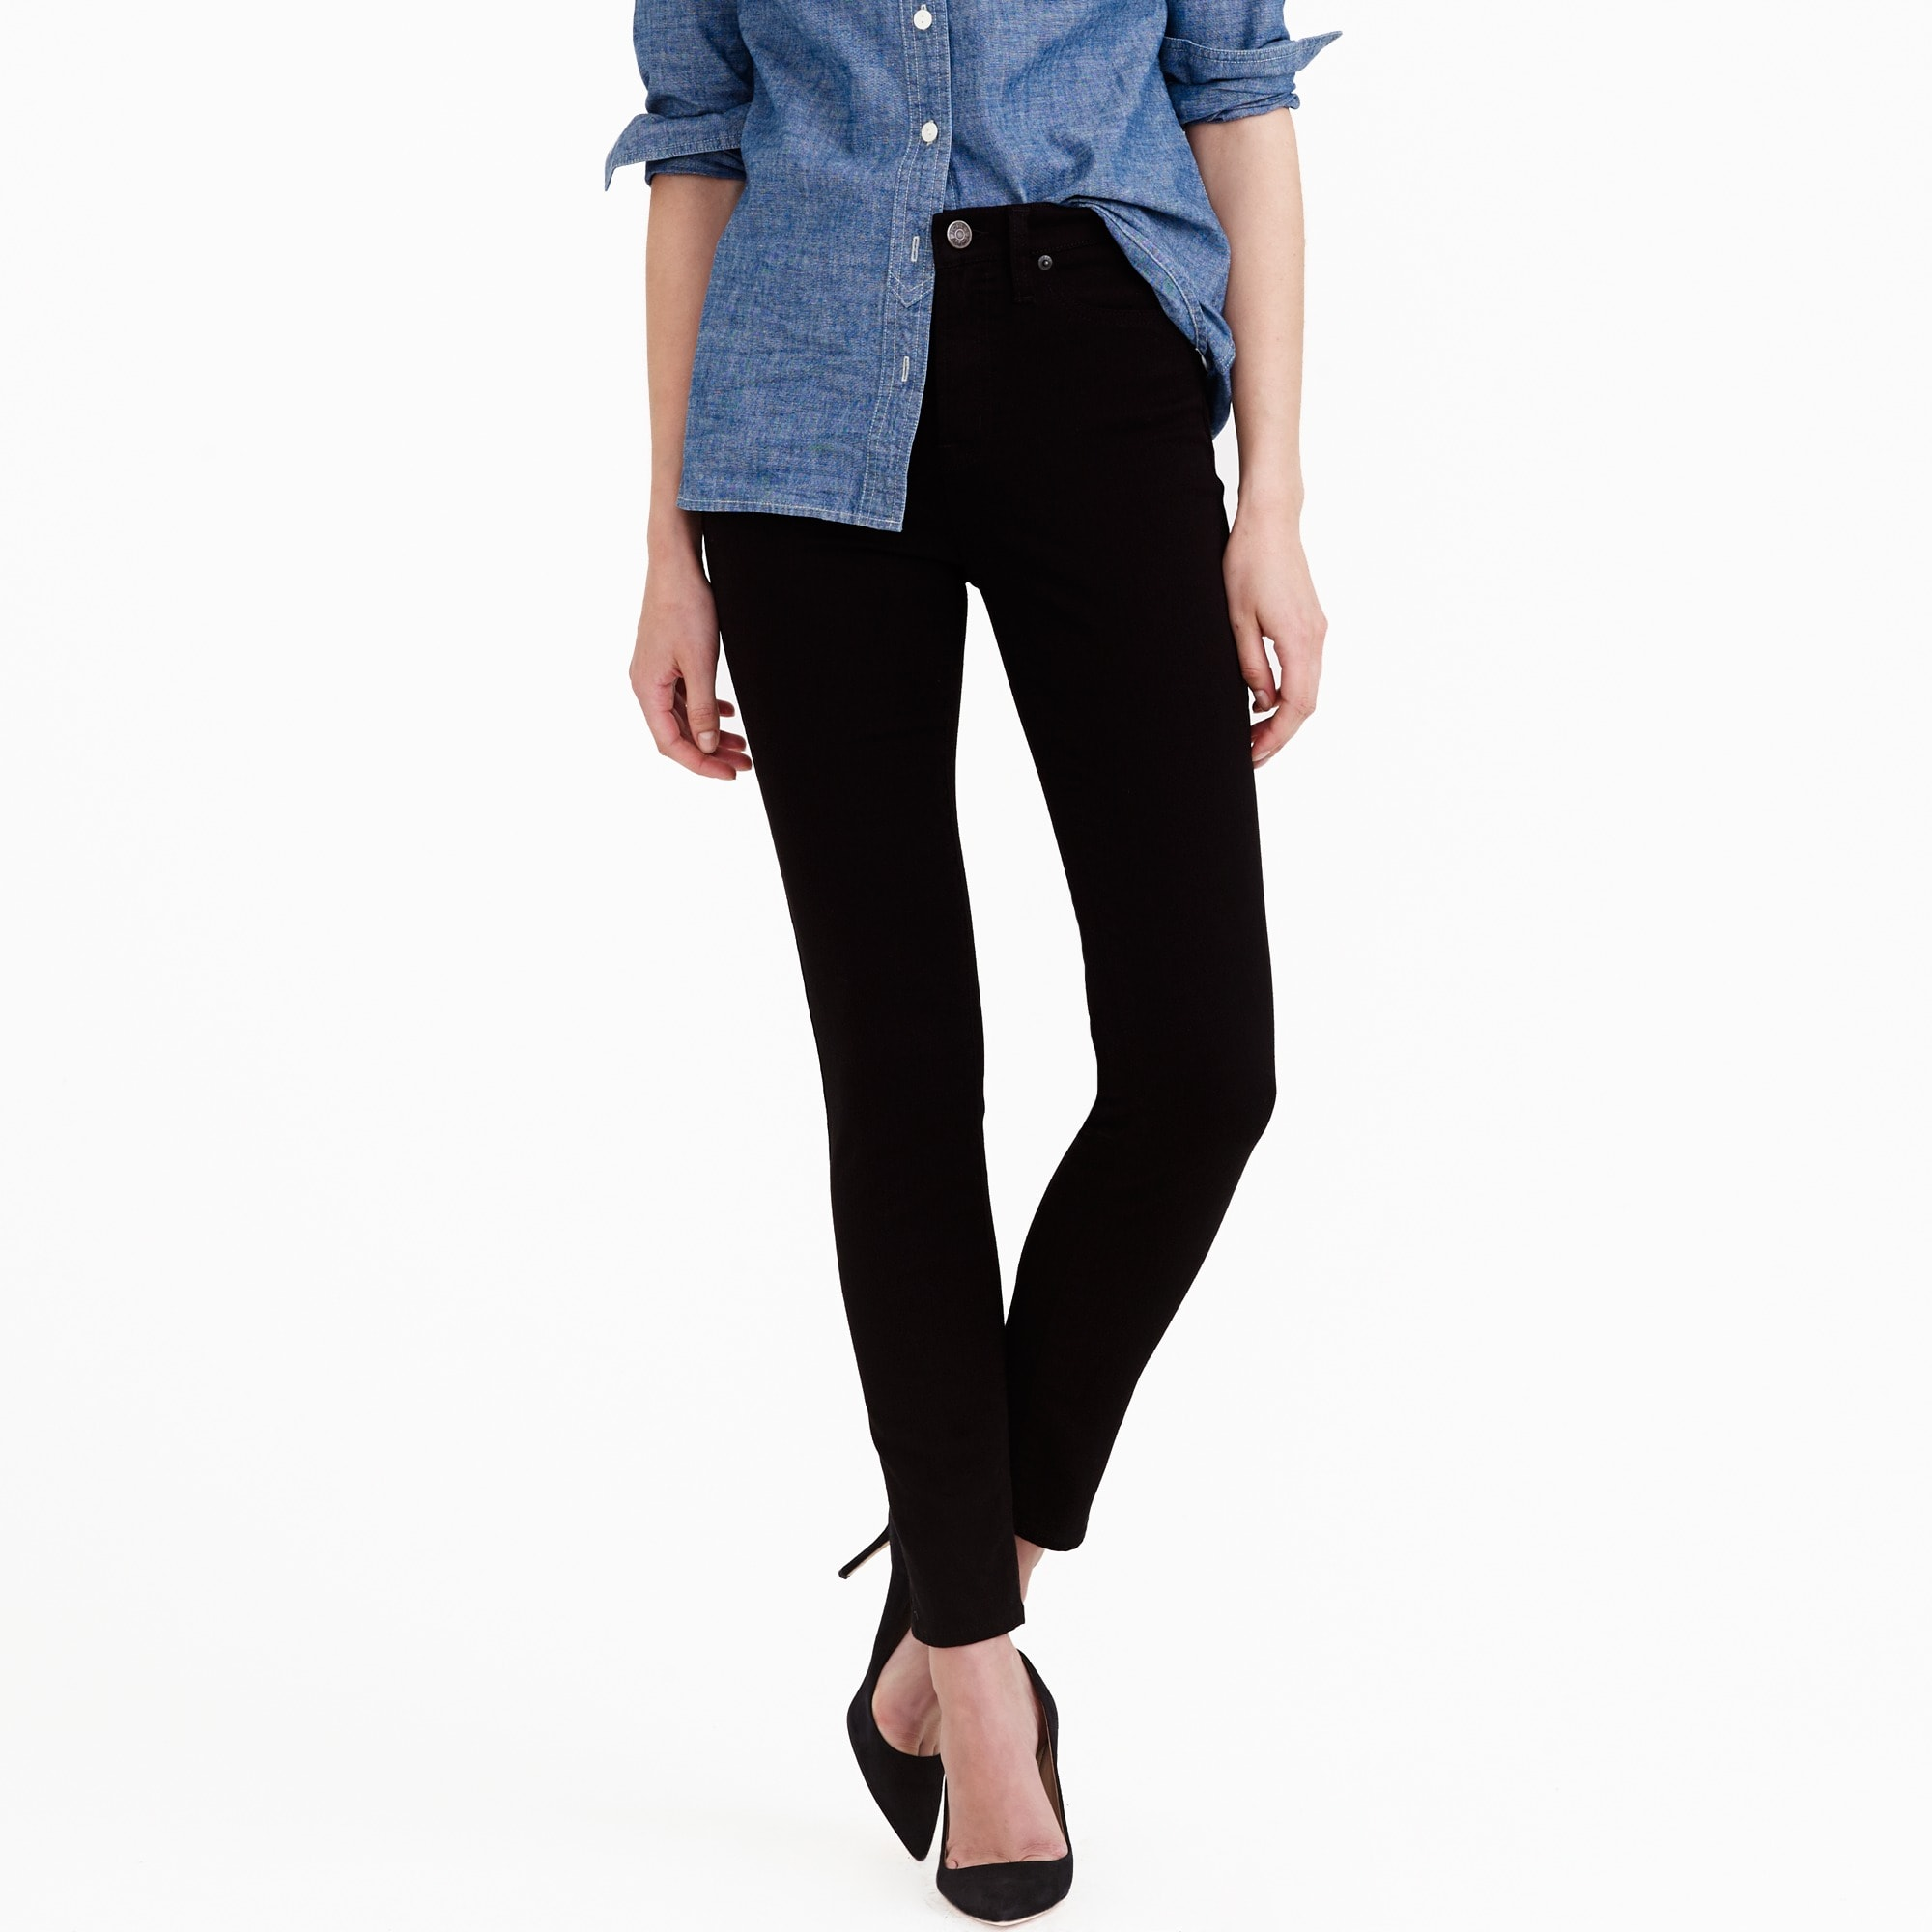 petite lookout high-rise jean in black : women's jeans